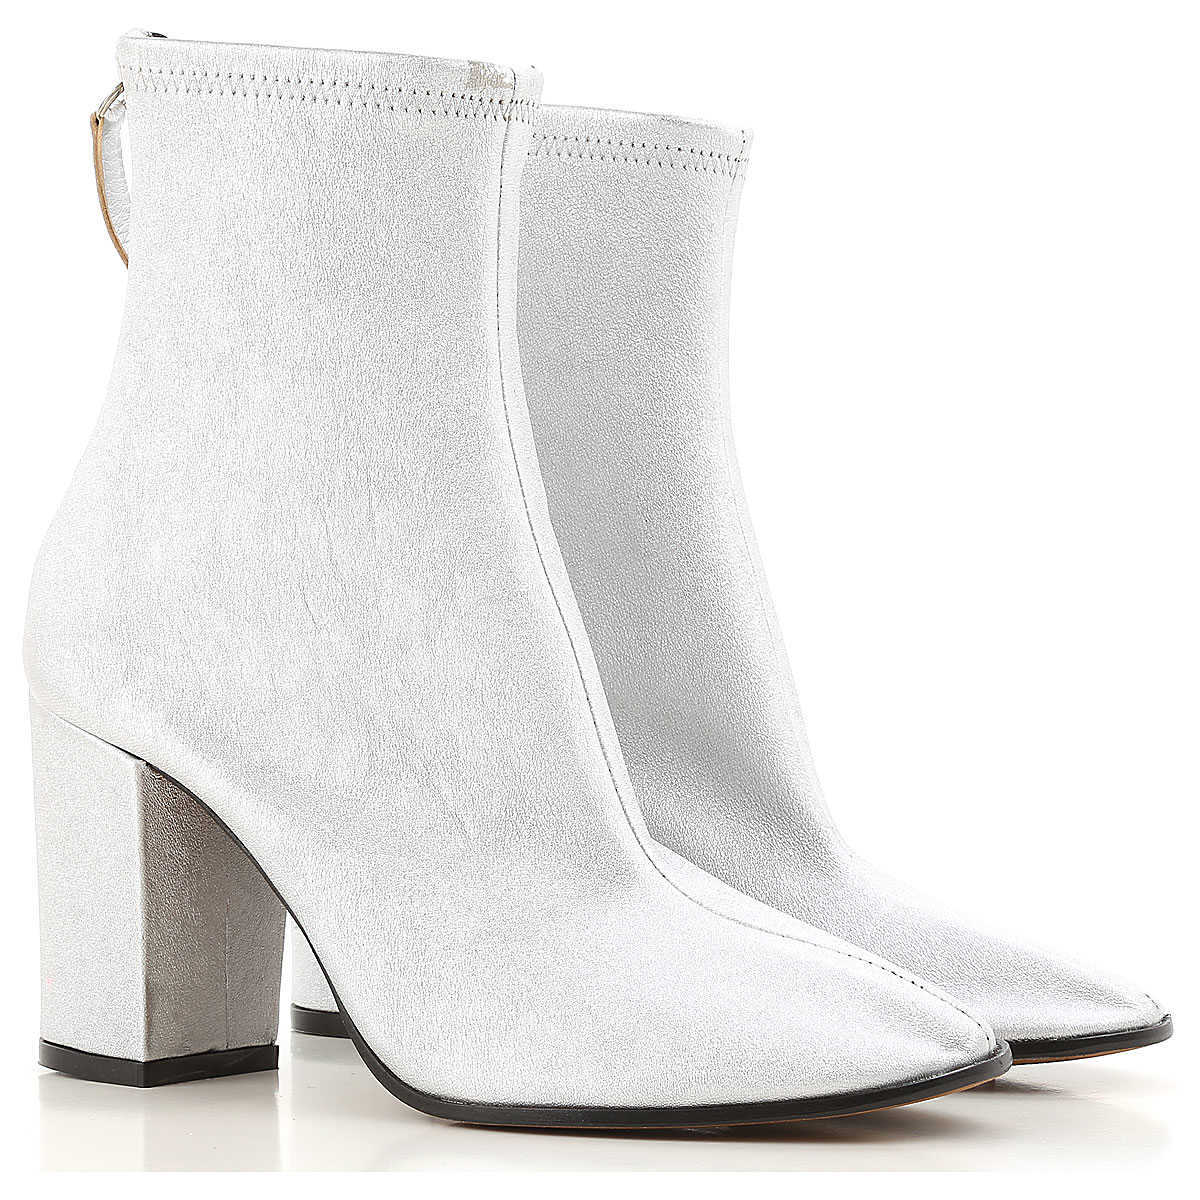 Golden Goose Boots for Women Booties On Sale in Outlet - GOOFASH